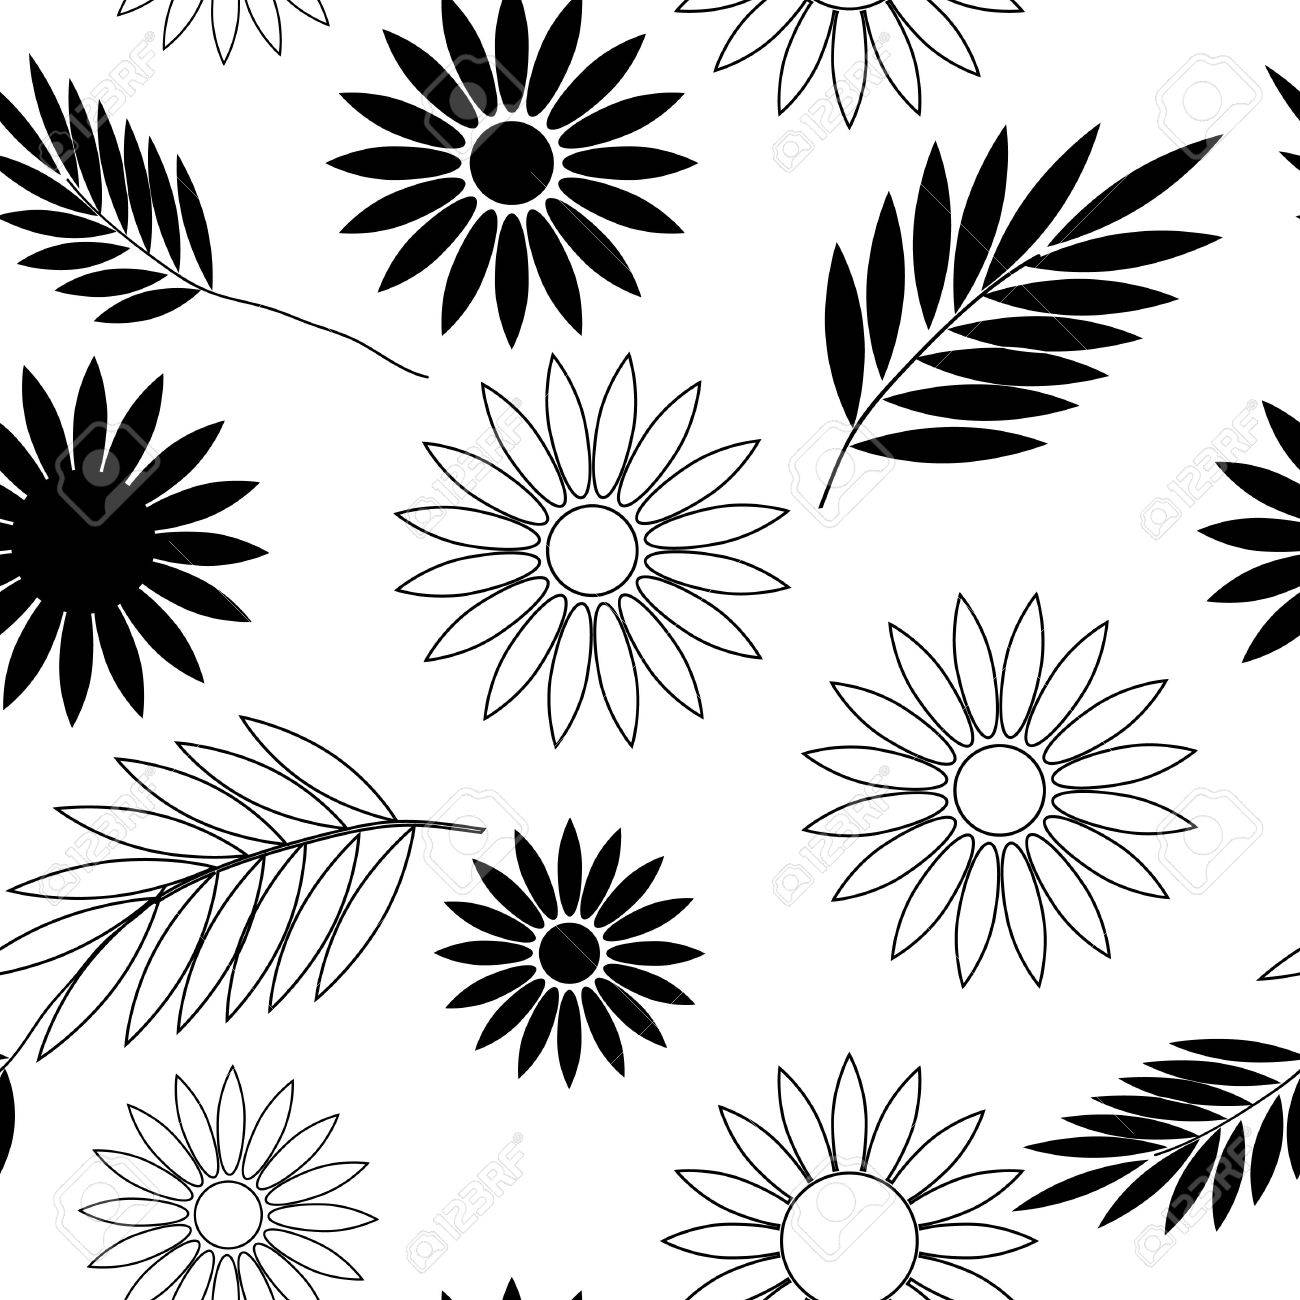 Seamless Black And White Flower Wallpaper Royalty Free Cliparts